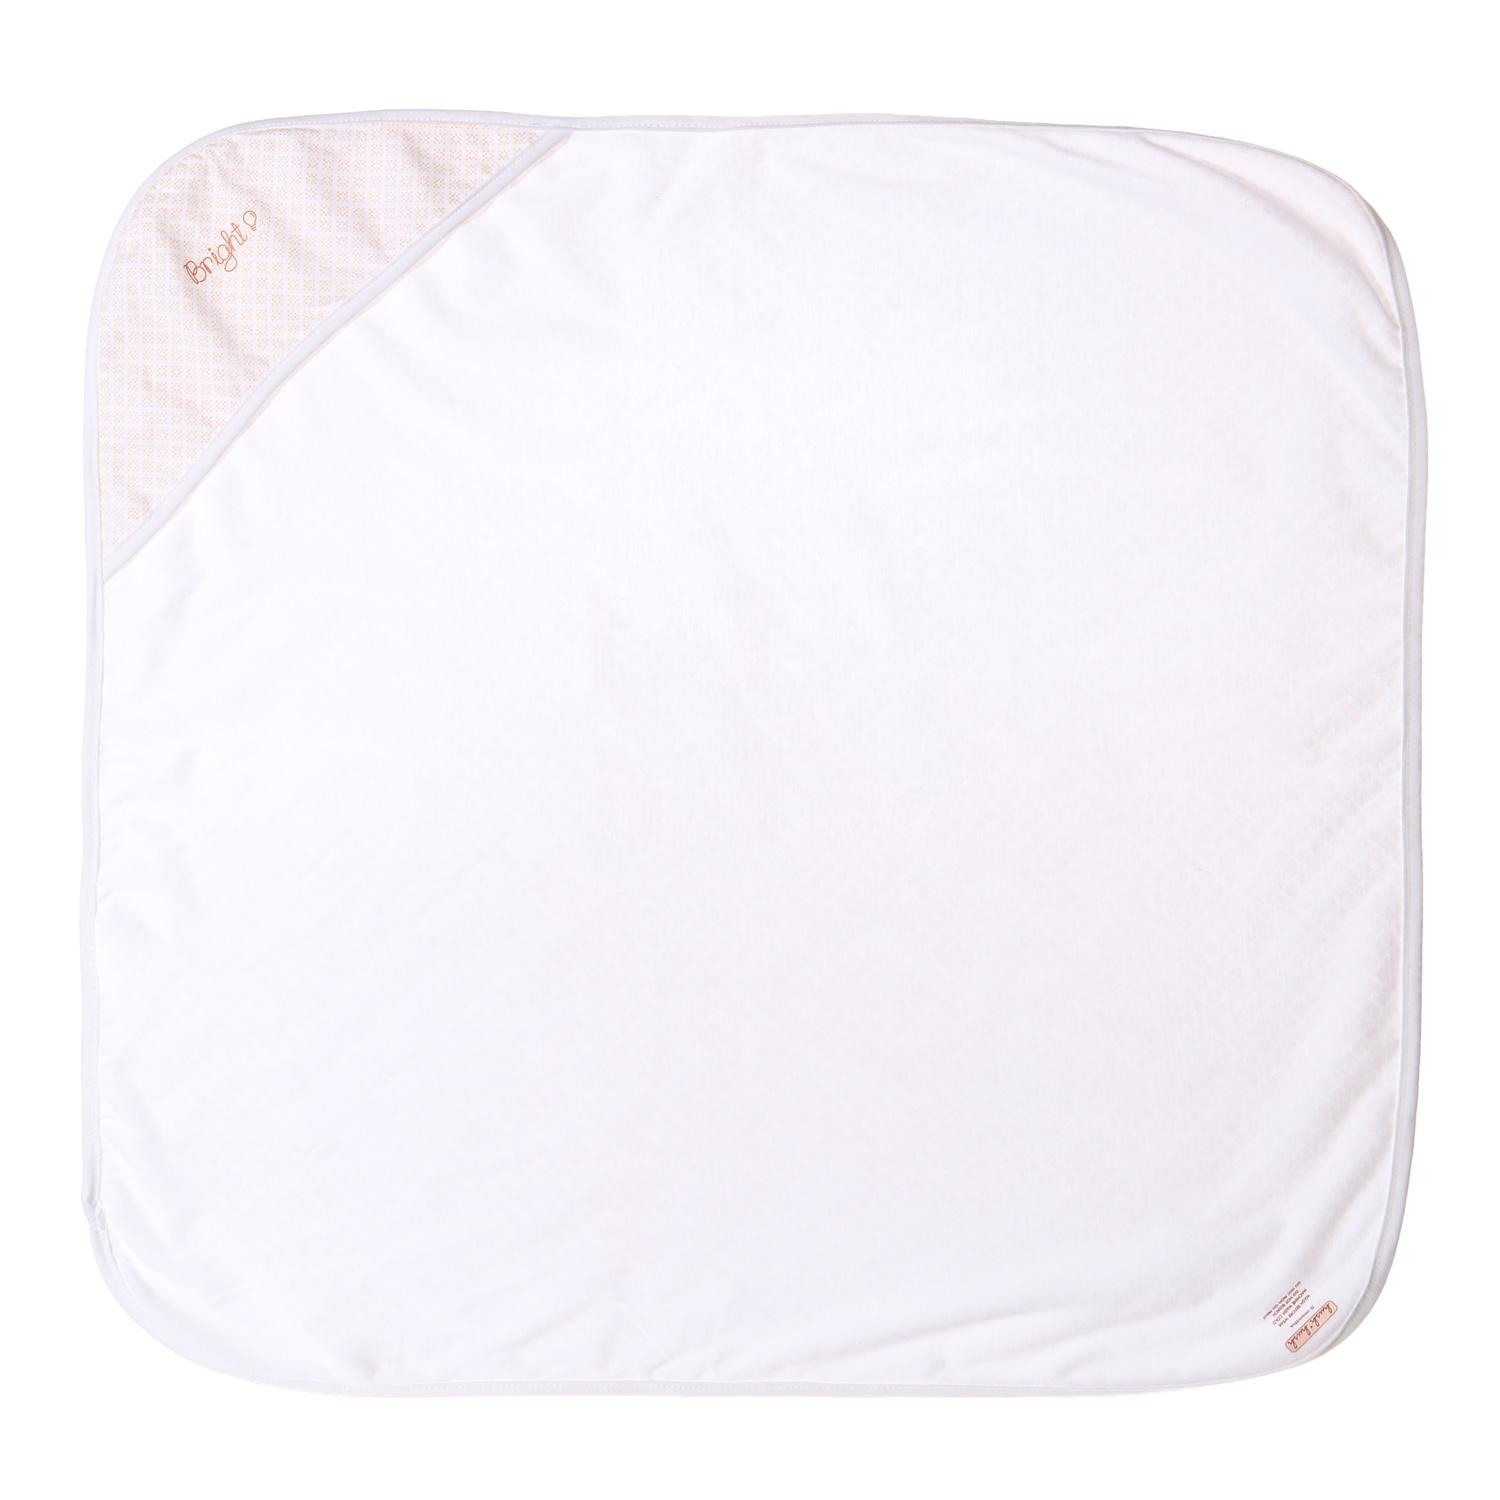 Hush Hush Baby Babies Bright Hooded Blanket 72 X 72cm In Cream By The Sm Store.